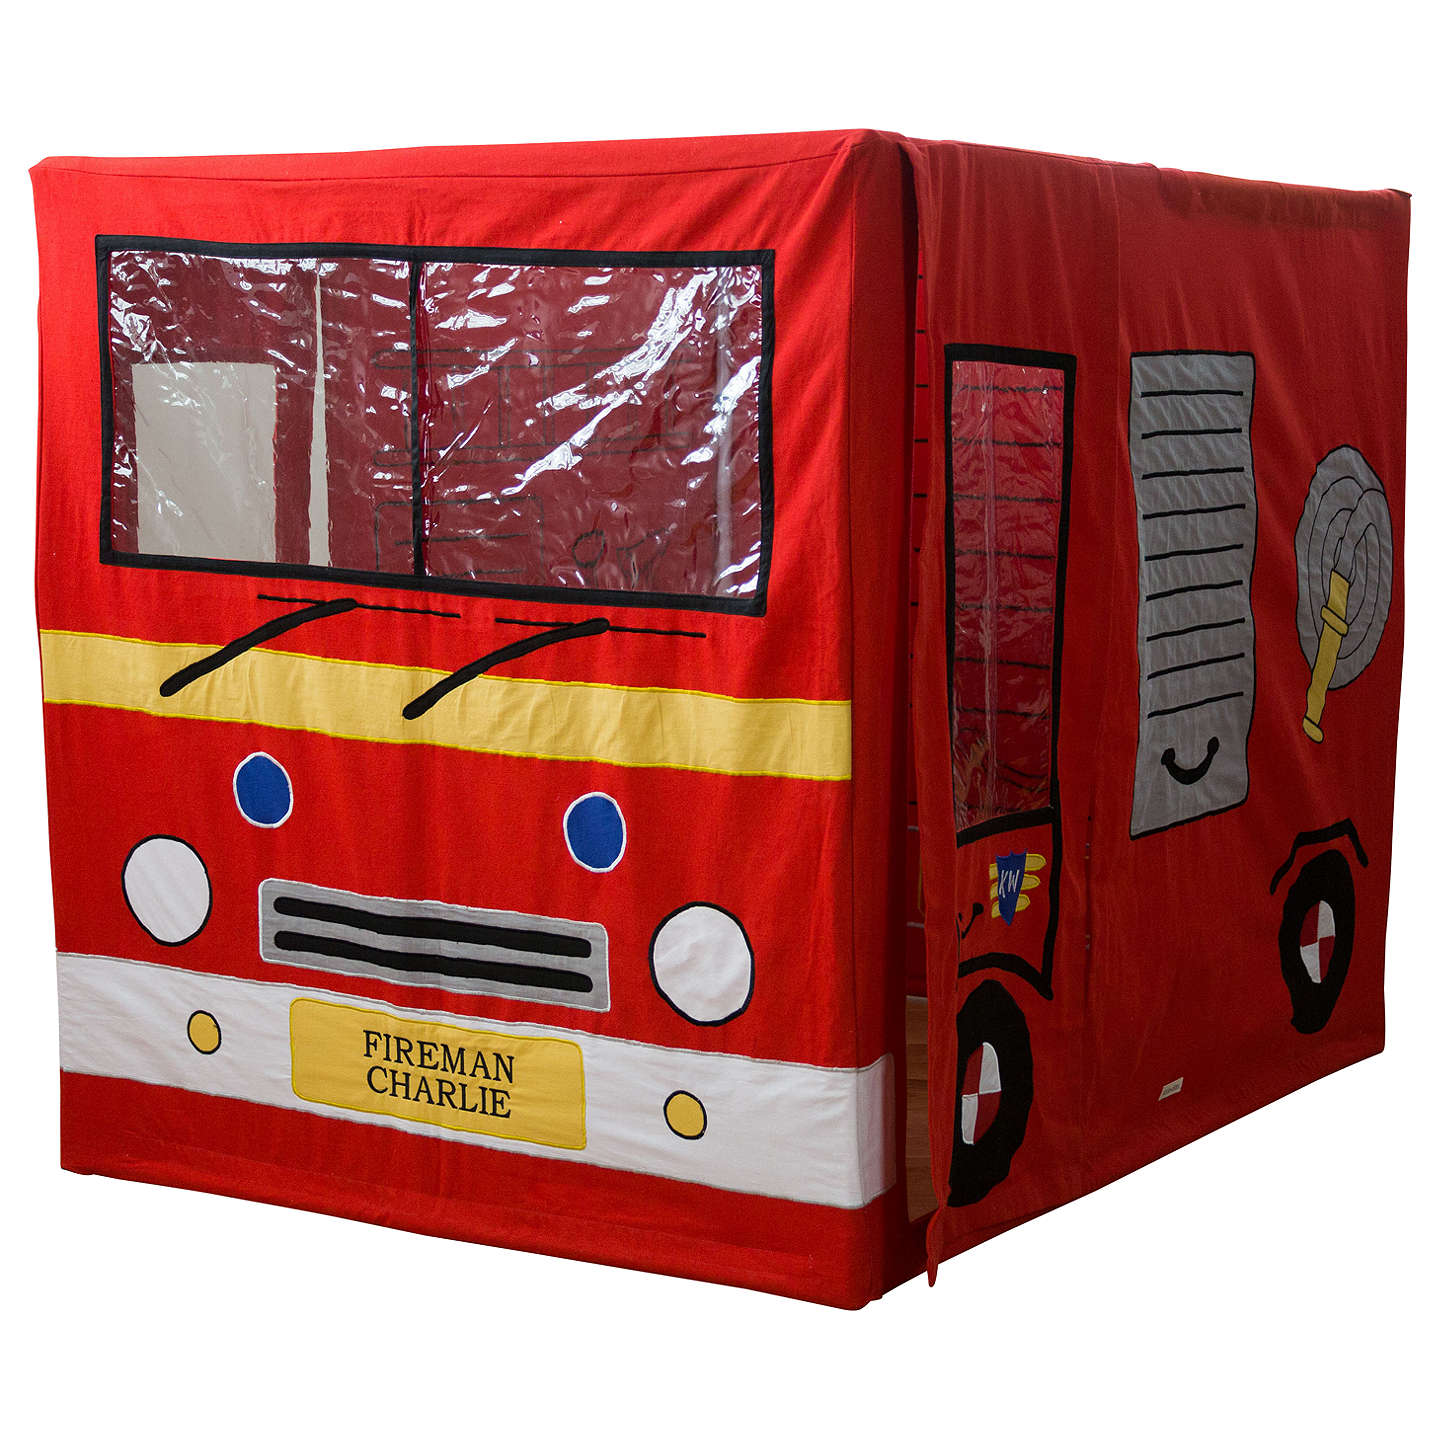 BuyKiddiewinkles Personalised Childrenu0027s Fire Engine Play Tent Online at johnlewis. ...  sc 1 st  John Lewis & Kiddiewinkles Personalised Childrenu0027s Fire Engine Play Tent at John ...